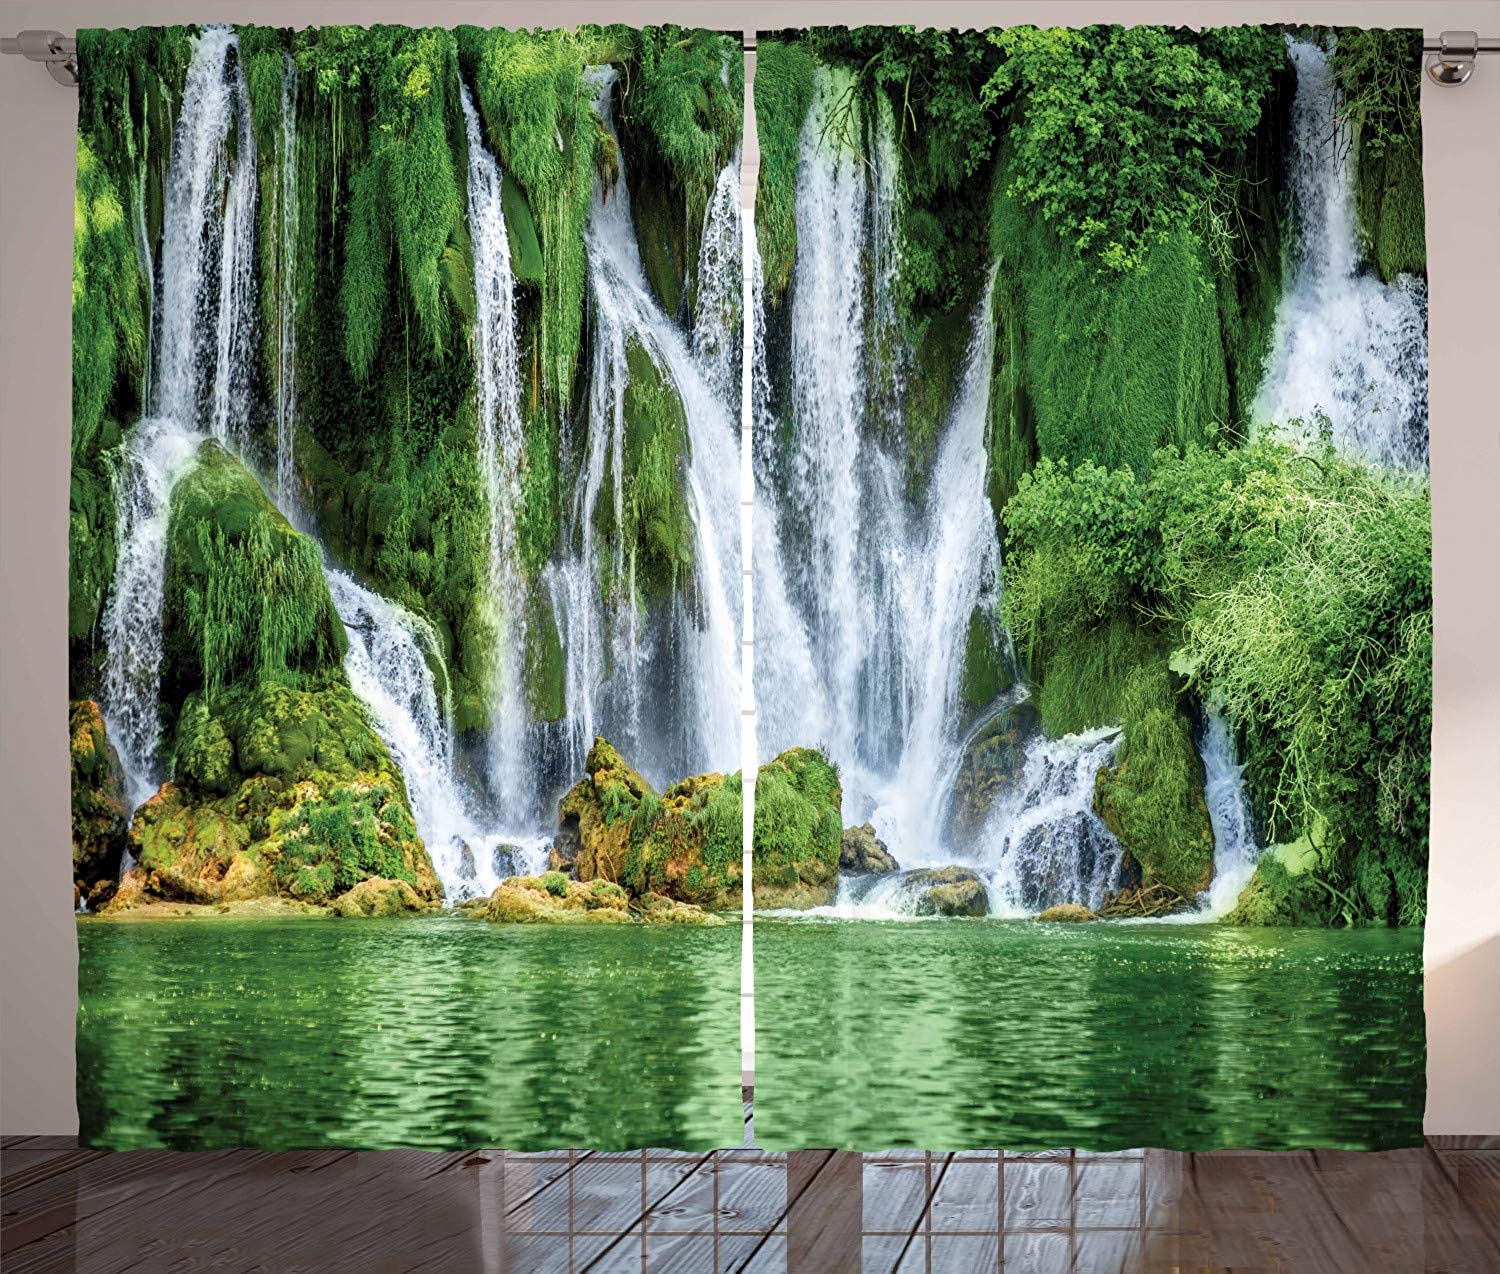 Ambesonne Waterfall Decor Collection, Moss Greenery Reflection on River Landmark in Bosnia and Herzegovina Picture, Window Treatments, Living Room Curtain 2 Panels Set, 108 X 90 Inches, Green White